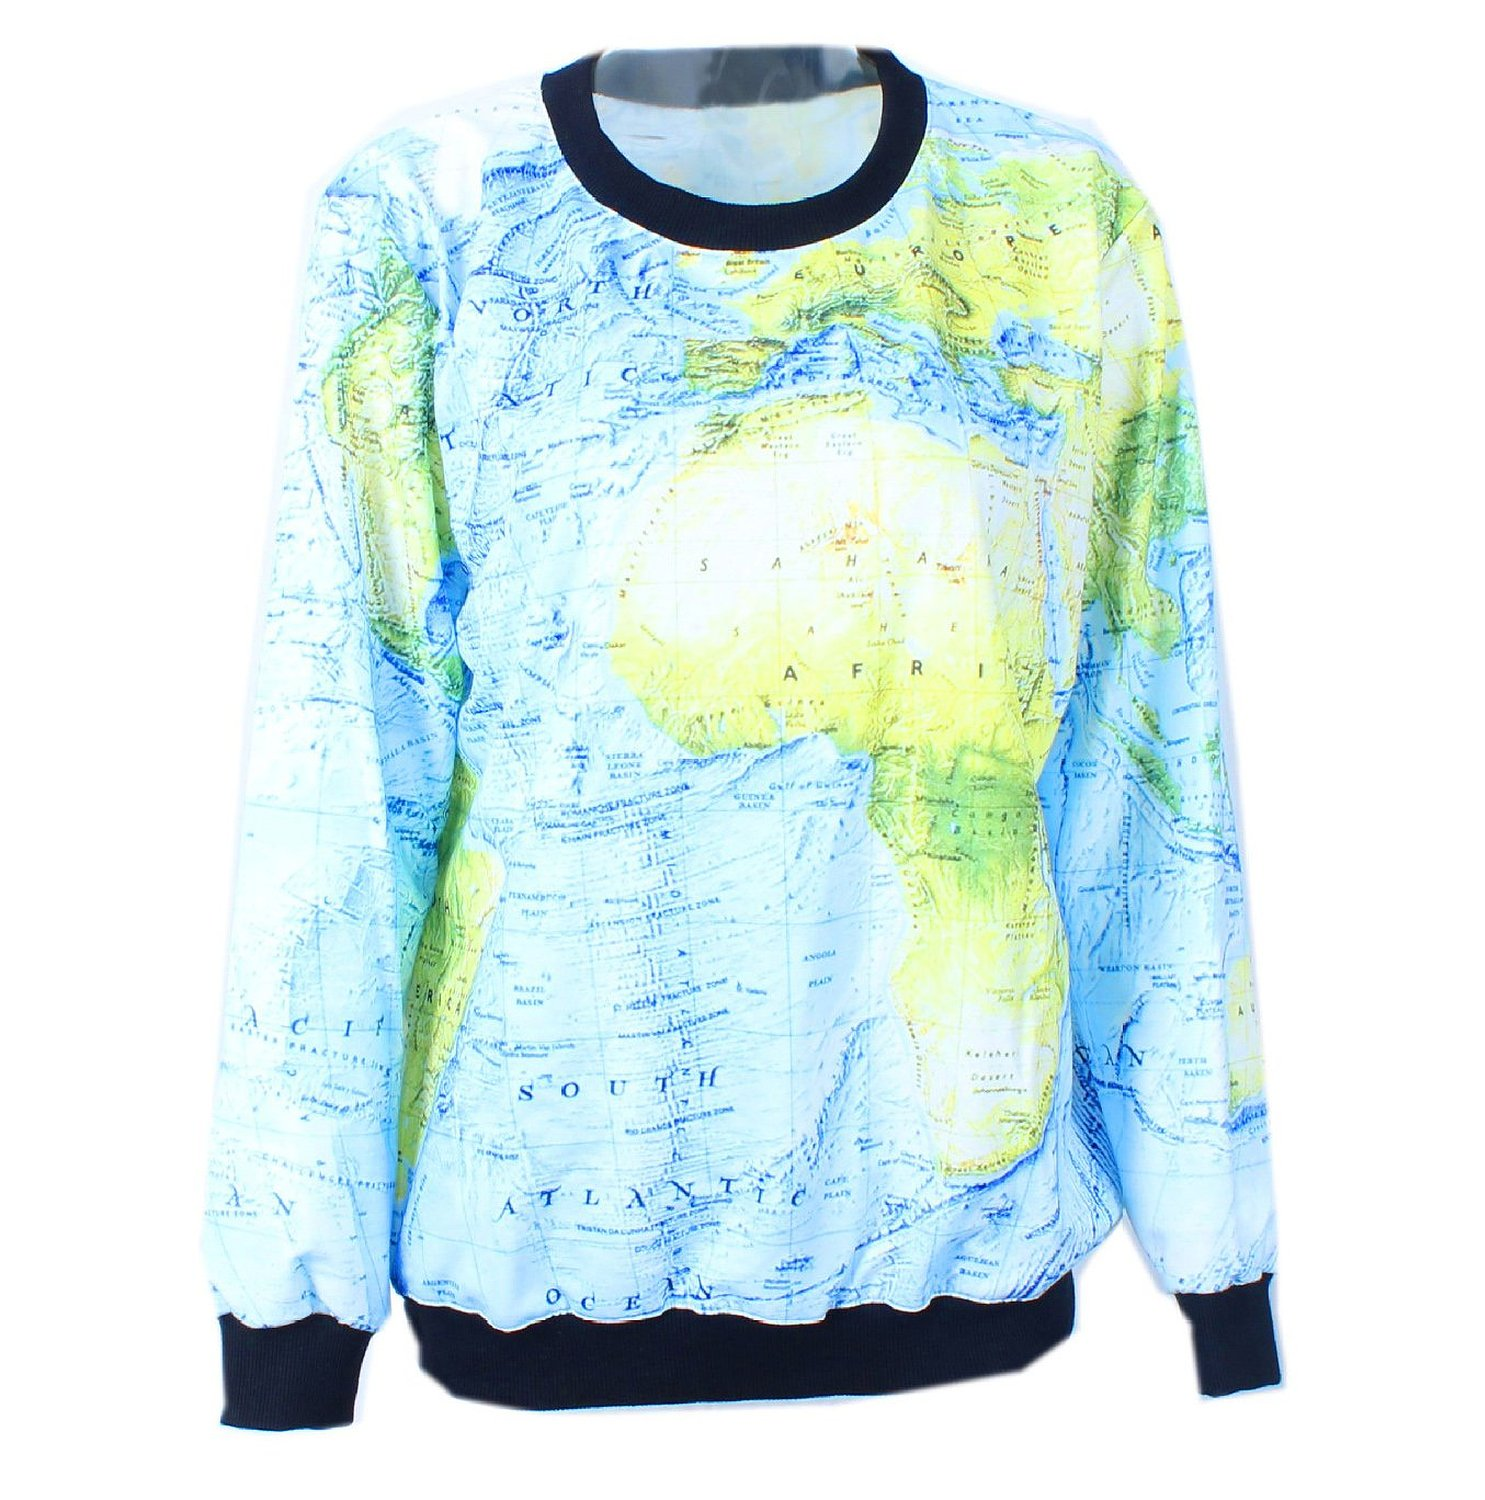 Unisex shirt trendy printed long sleeves pullover world map at unisex shirt trendy printed long sleeves pullover world map at amazon womens clothing store gumiabroncs Choice Image